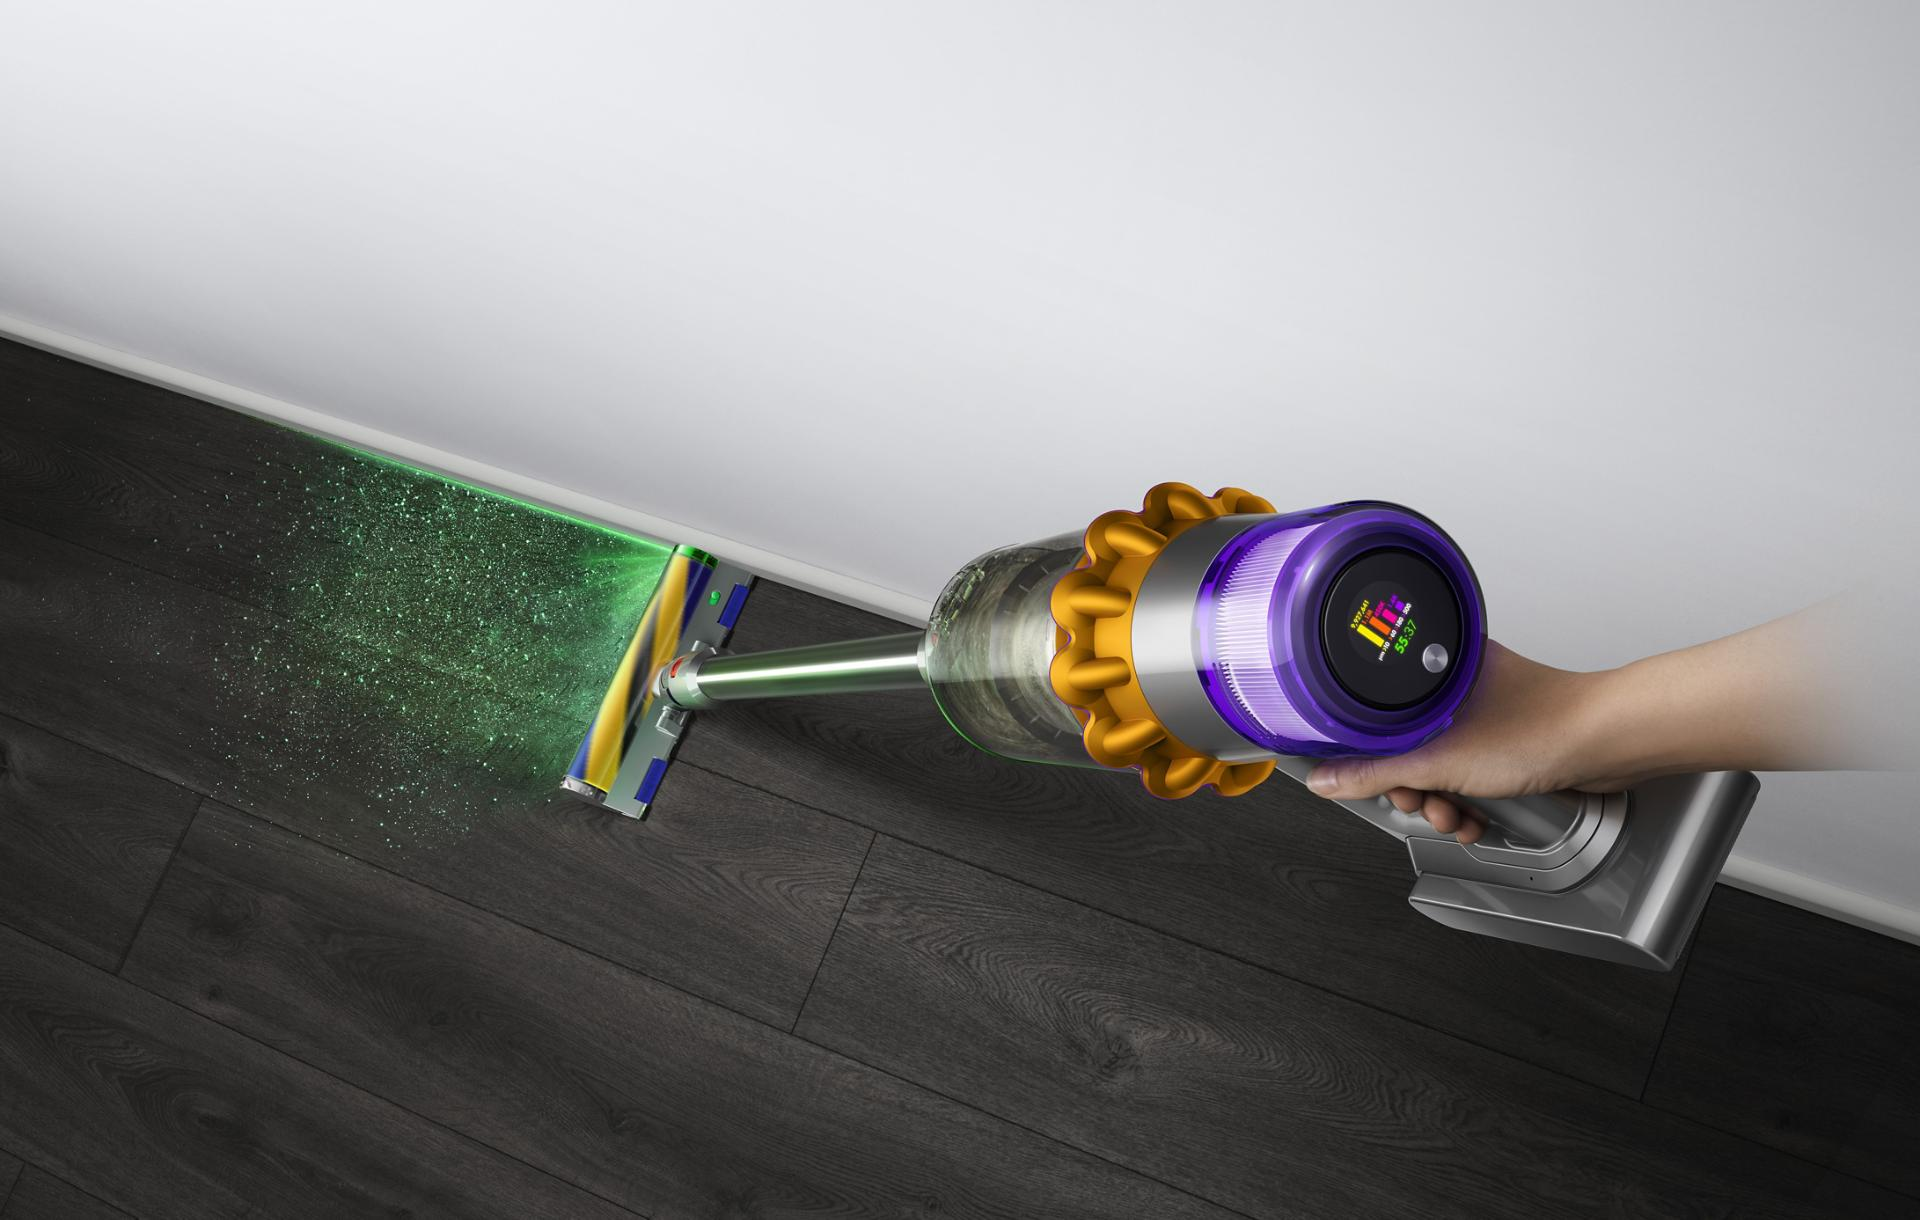 Close-up of hand holding the Dyson V15 Detect vacuum